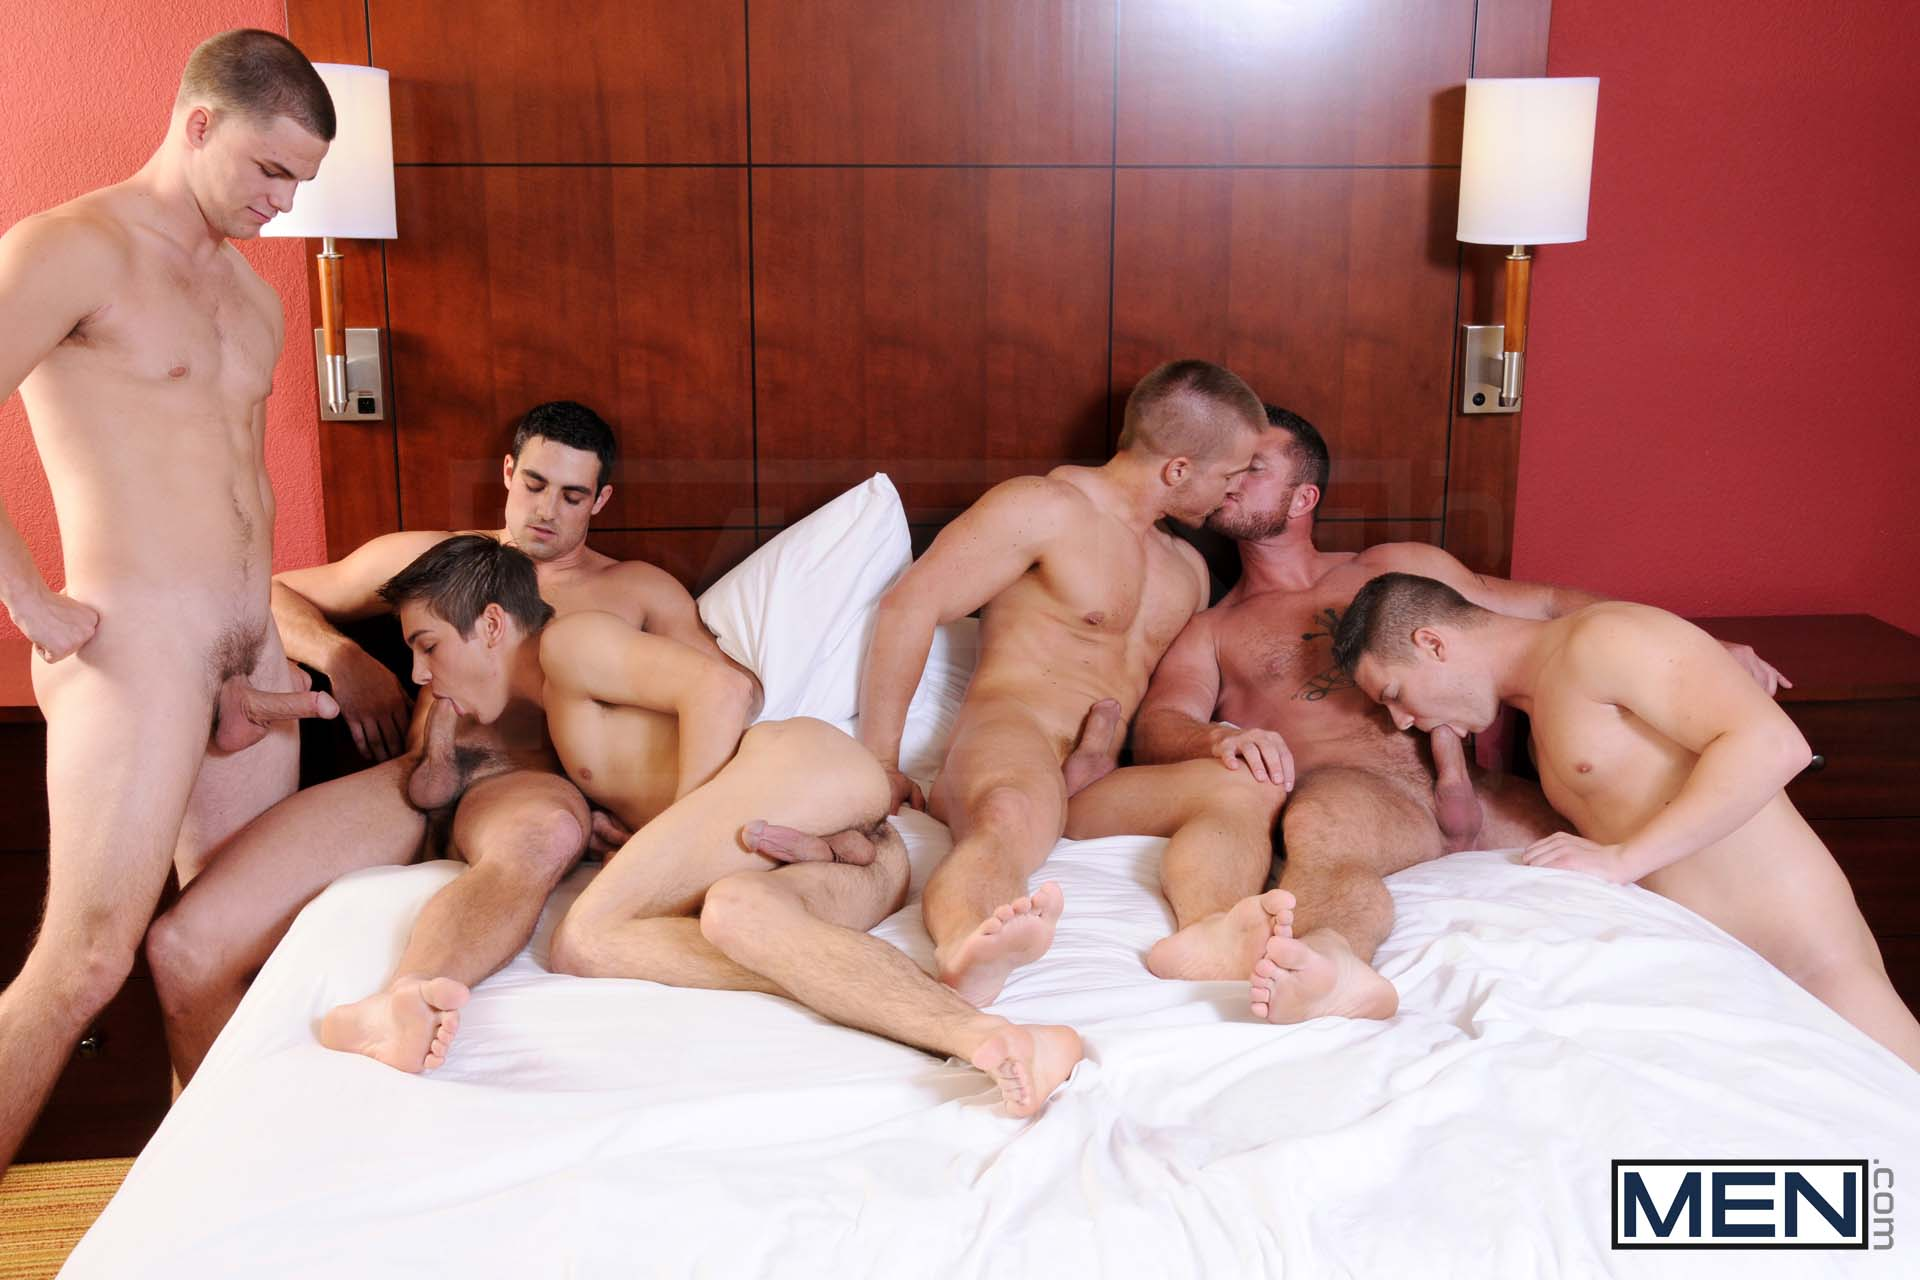 "Photo of Johnny Rapid pide a Jimmy Johnson, Charlie Harding, Liam Magnuson, Jack King y Riley Banks que lo conviertan en su puta ""Turn Me Into A Whore 3"" 